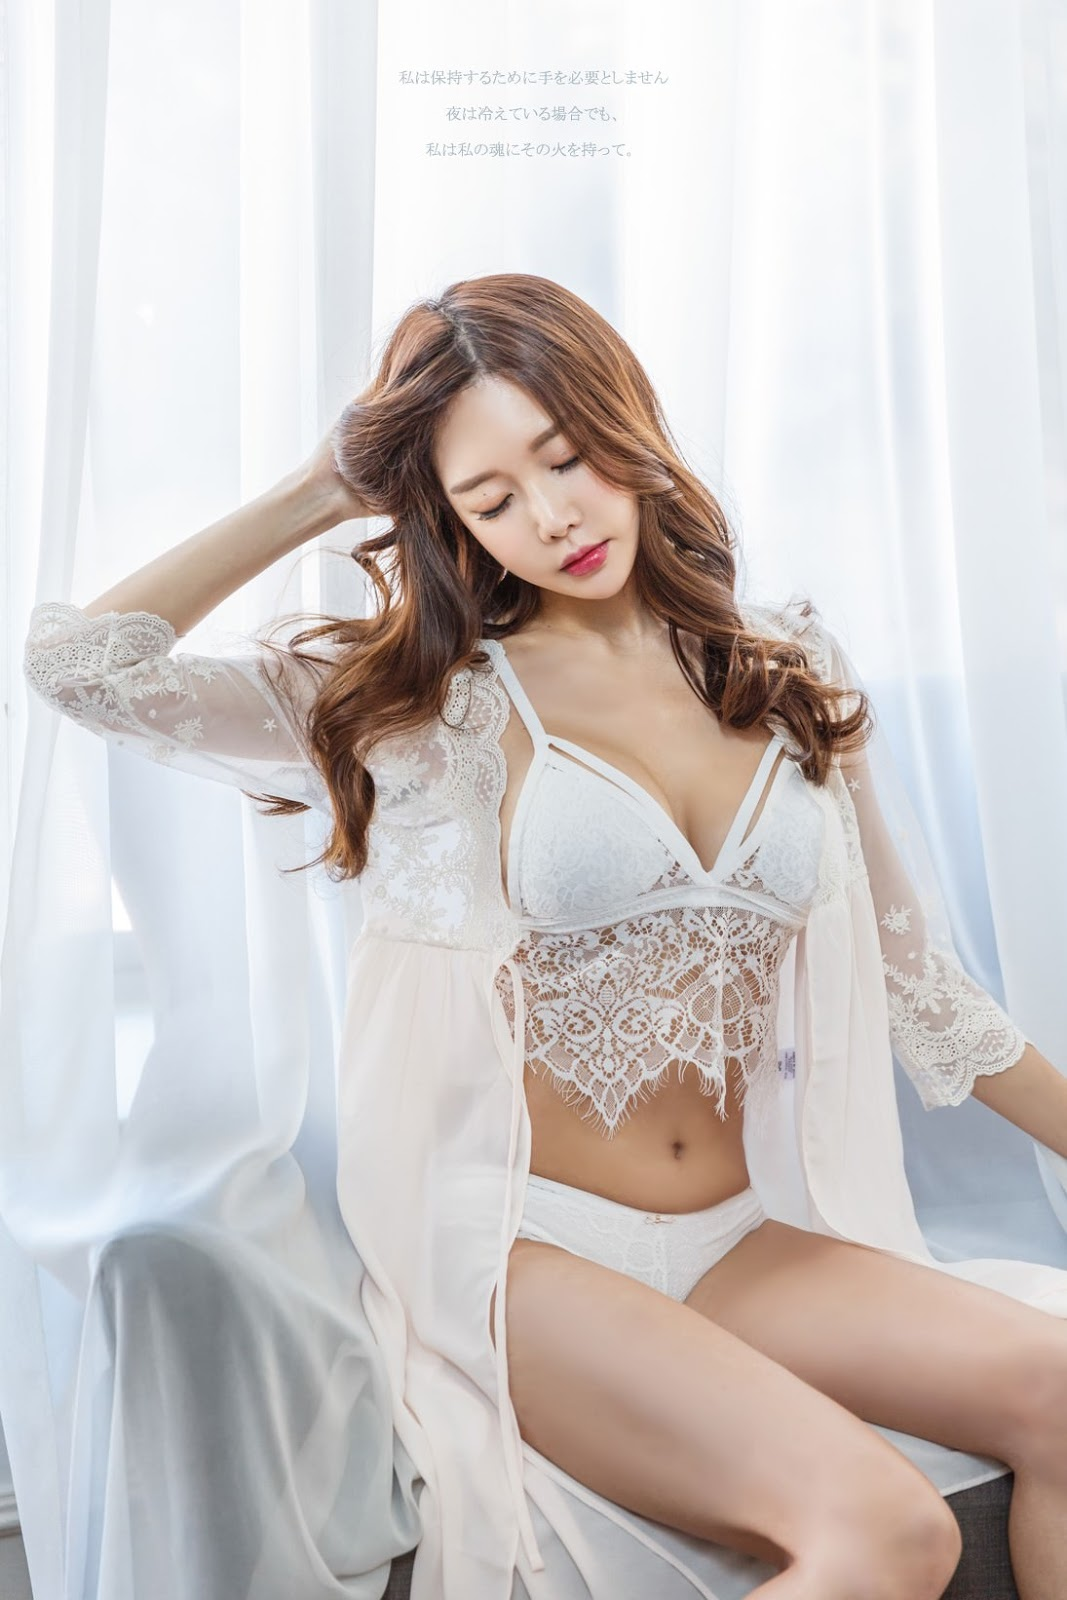 Yoon Ae Ji - So what are you waiting for - Korean Lingerie - TruePic.net